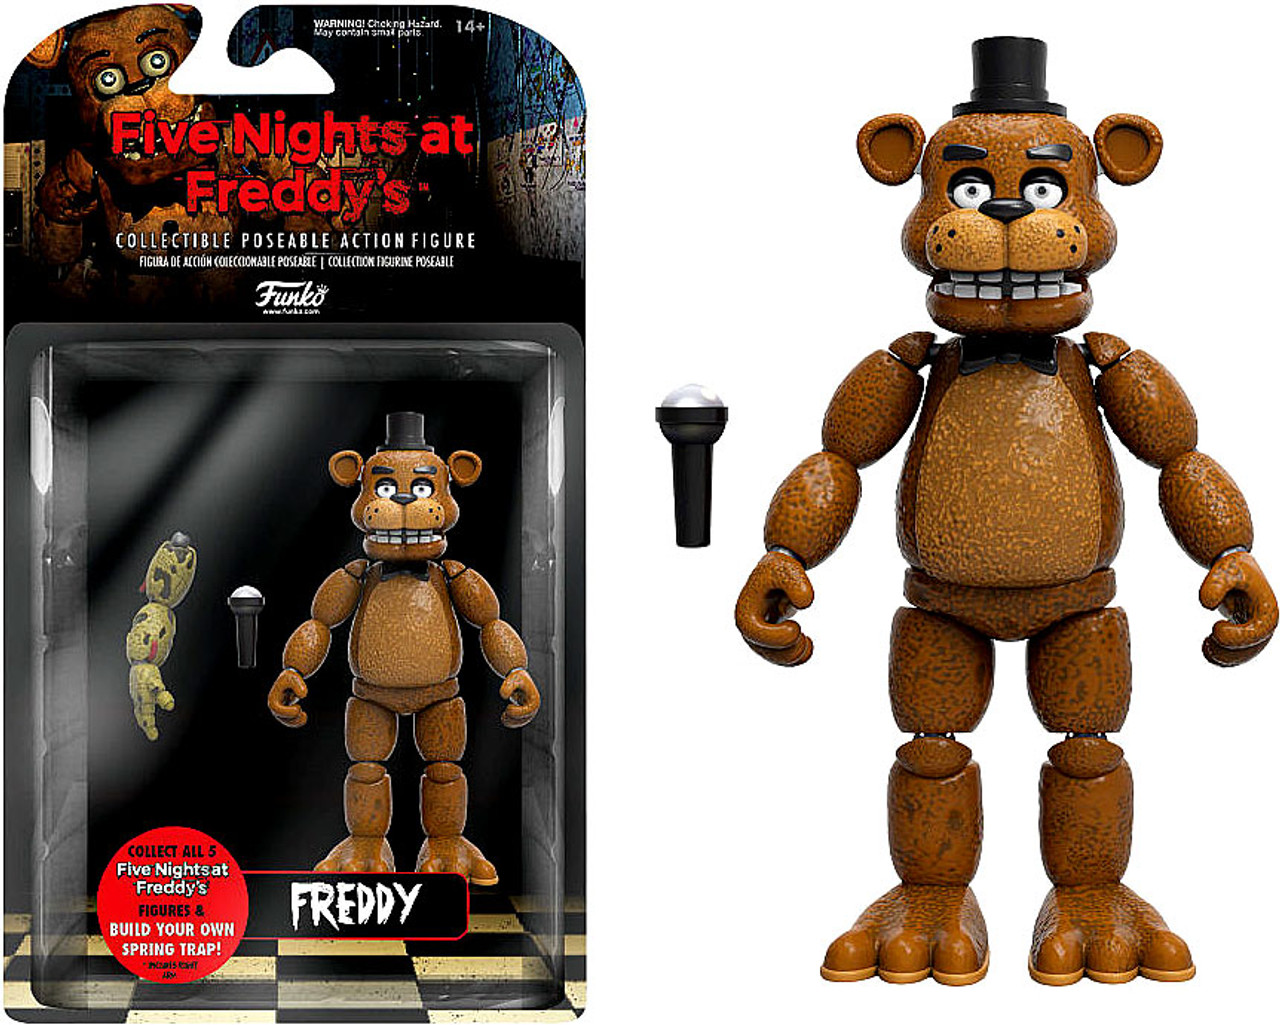 Funko Five Nights At Freddys Series 1 Freddy Action Figure Build Spring Trap Part Toywiz